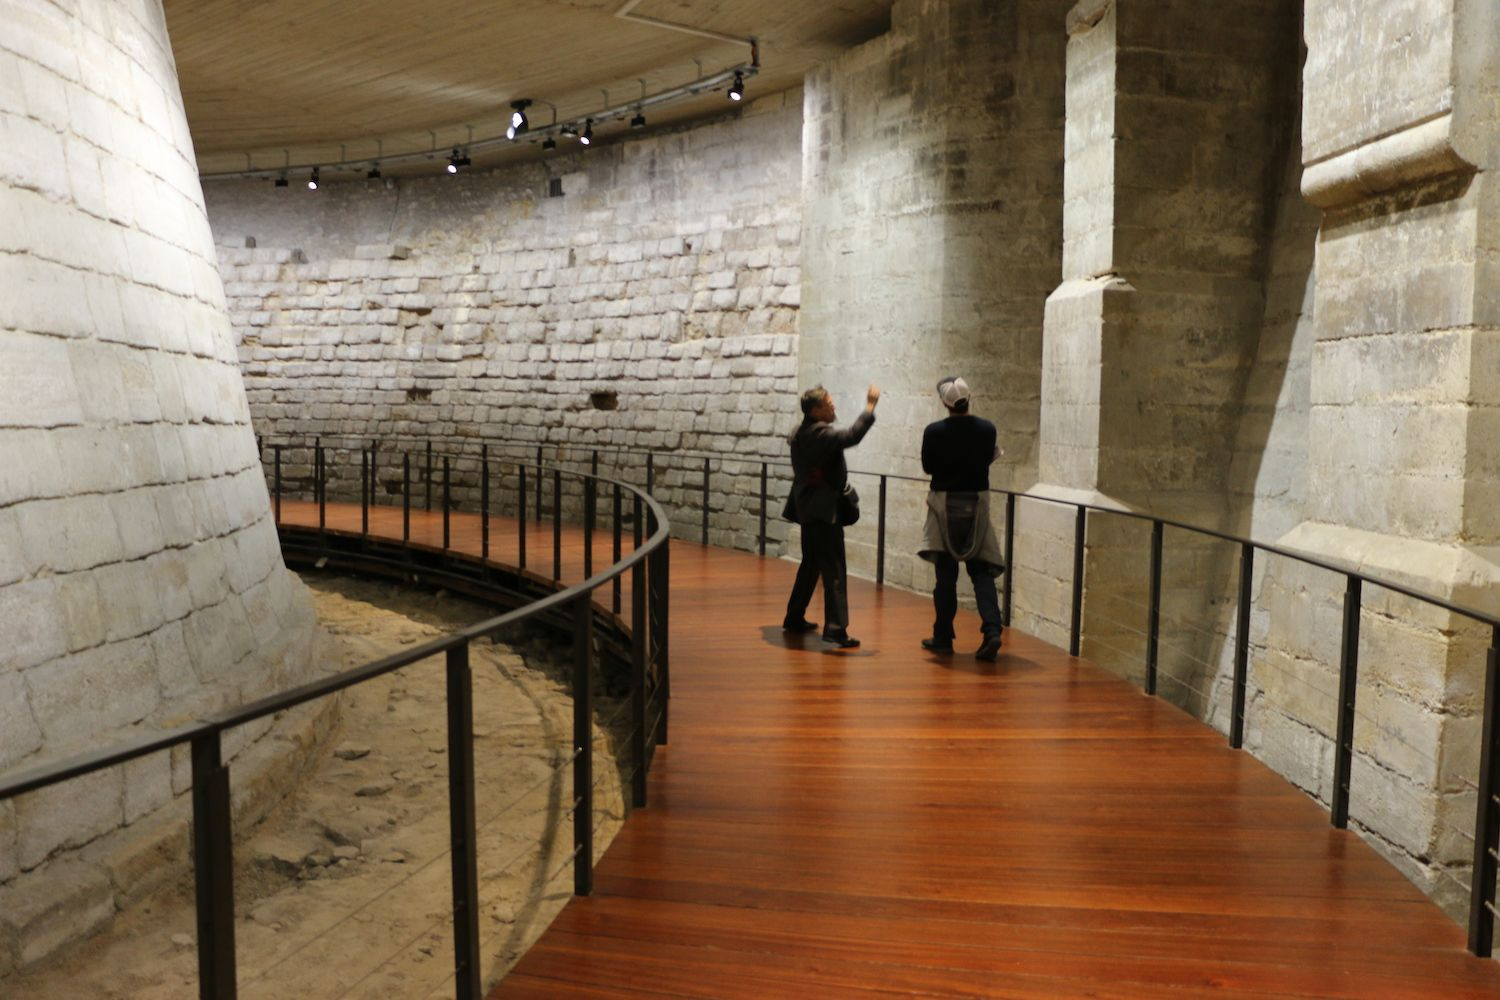 The Louvre Medieval Remains